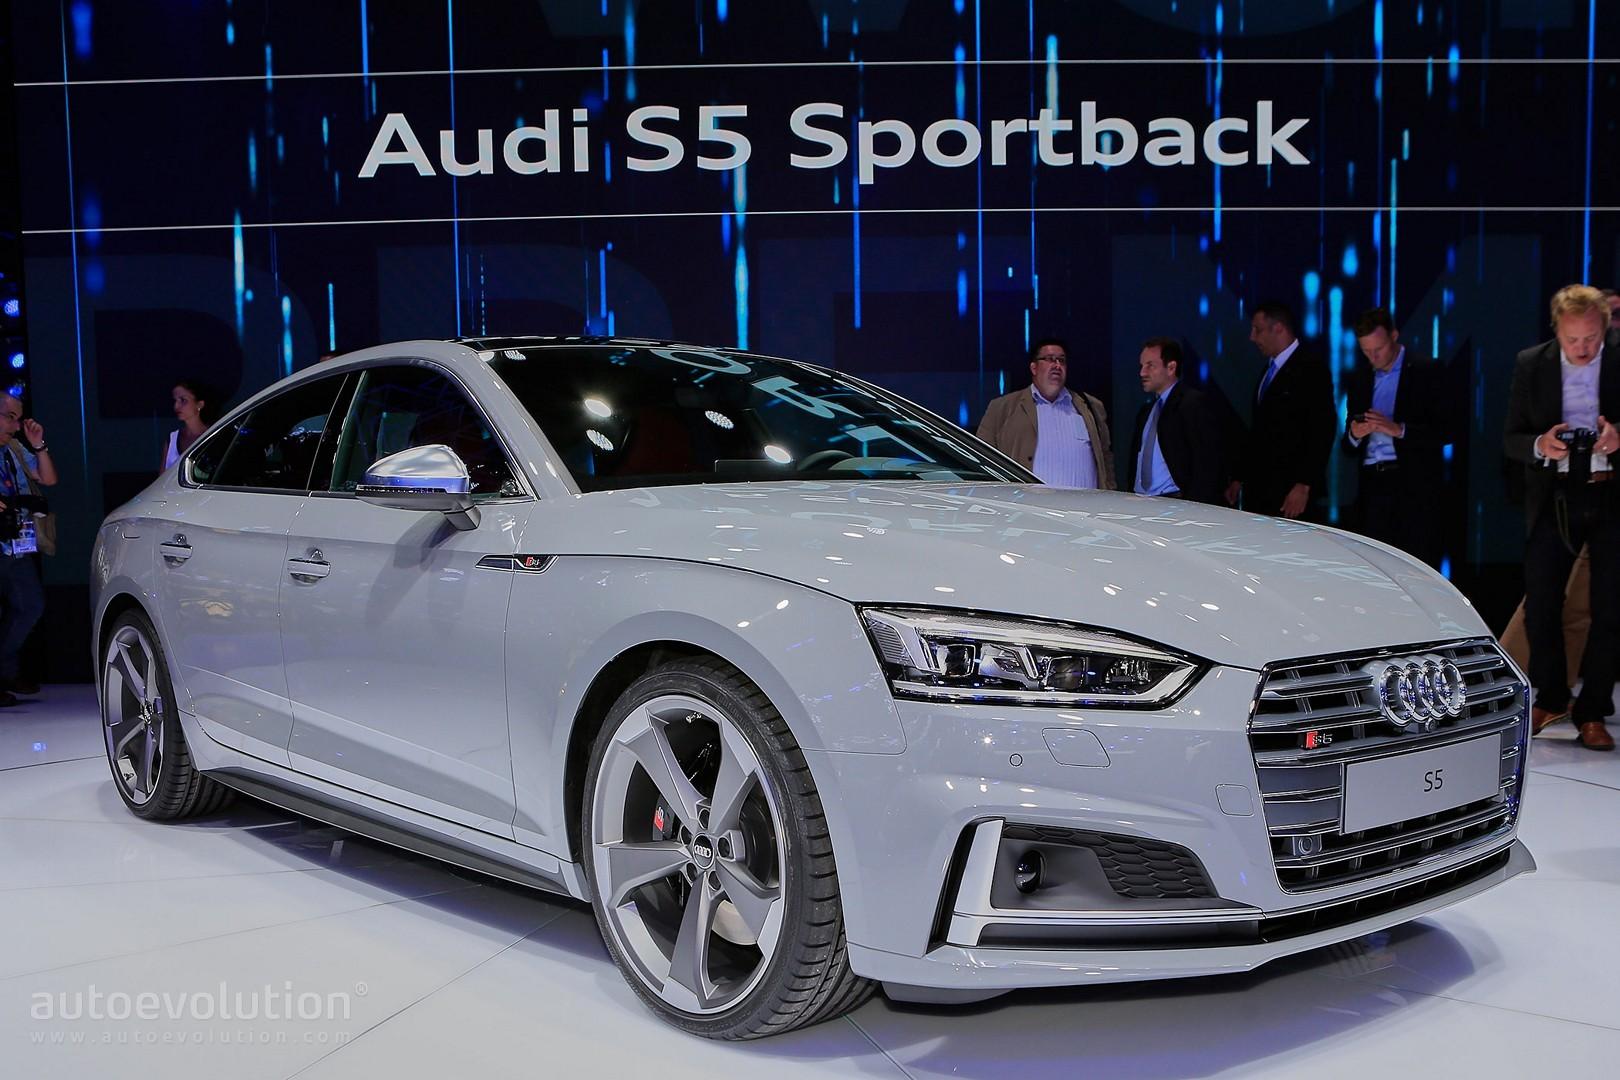 2017 audi s5 sportback looks like a shark thanks to nardo. Black Bedroom Furniture Sets. Home Design Ideas